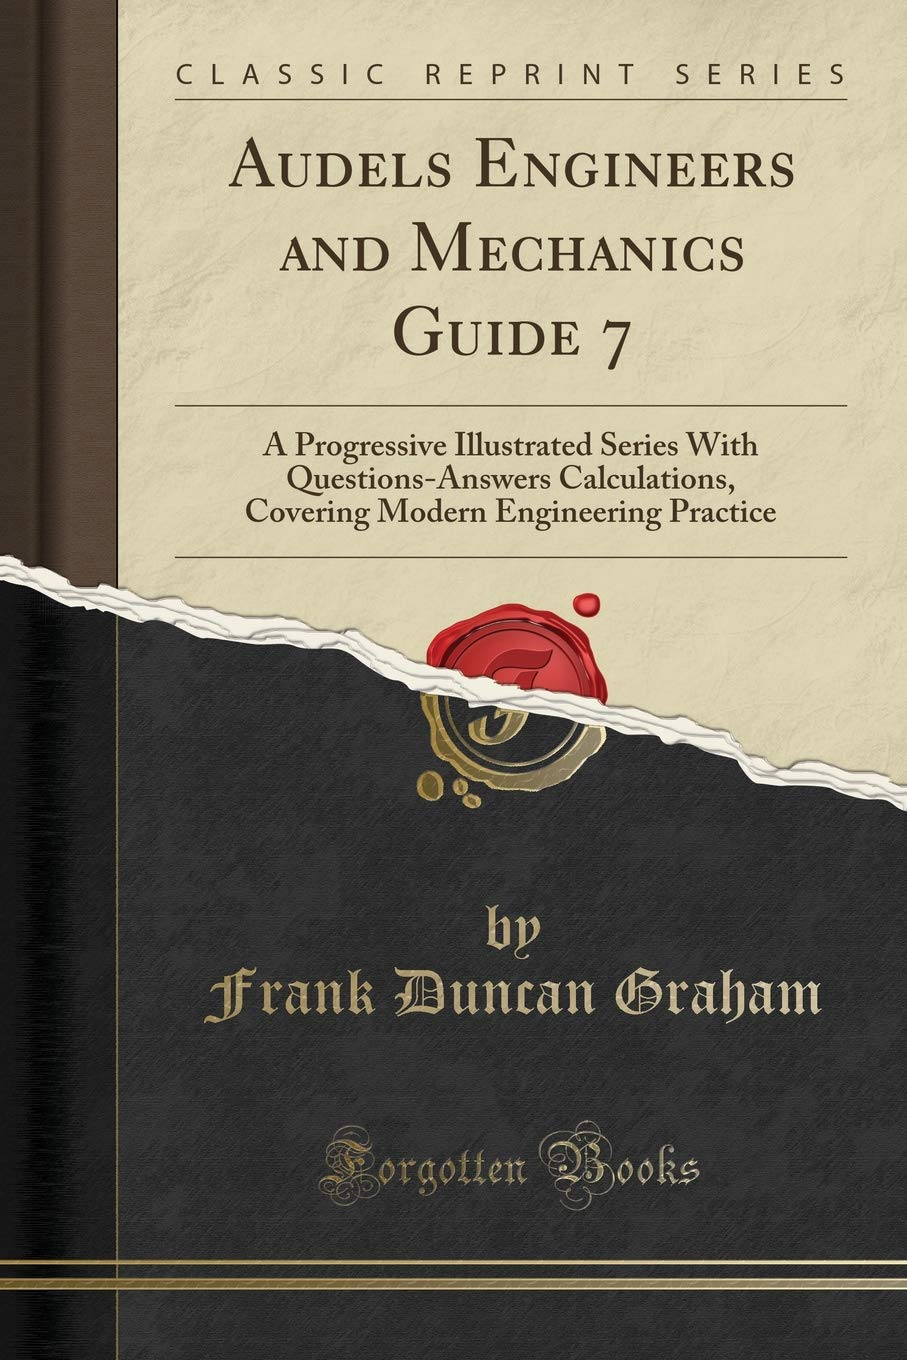 Audels Engineers and Mechanics Guide 7: A Progressive Illustrated Series With Questions-Answers Calculations, Covering Modern Engineering Practice (Classic Reprint) ebook